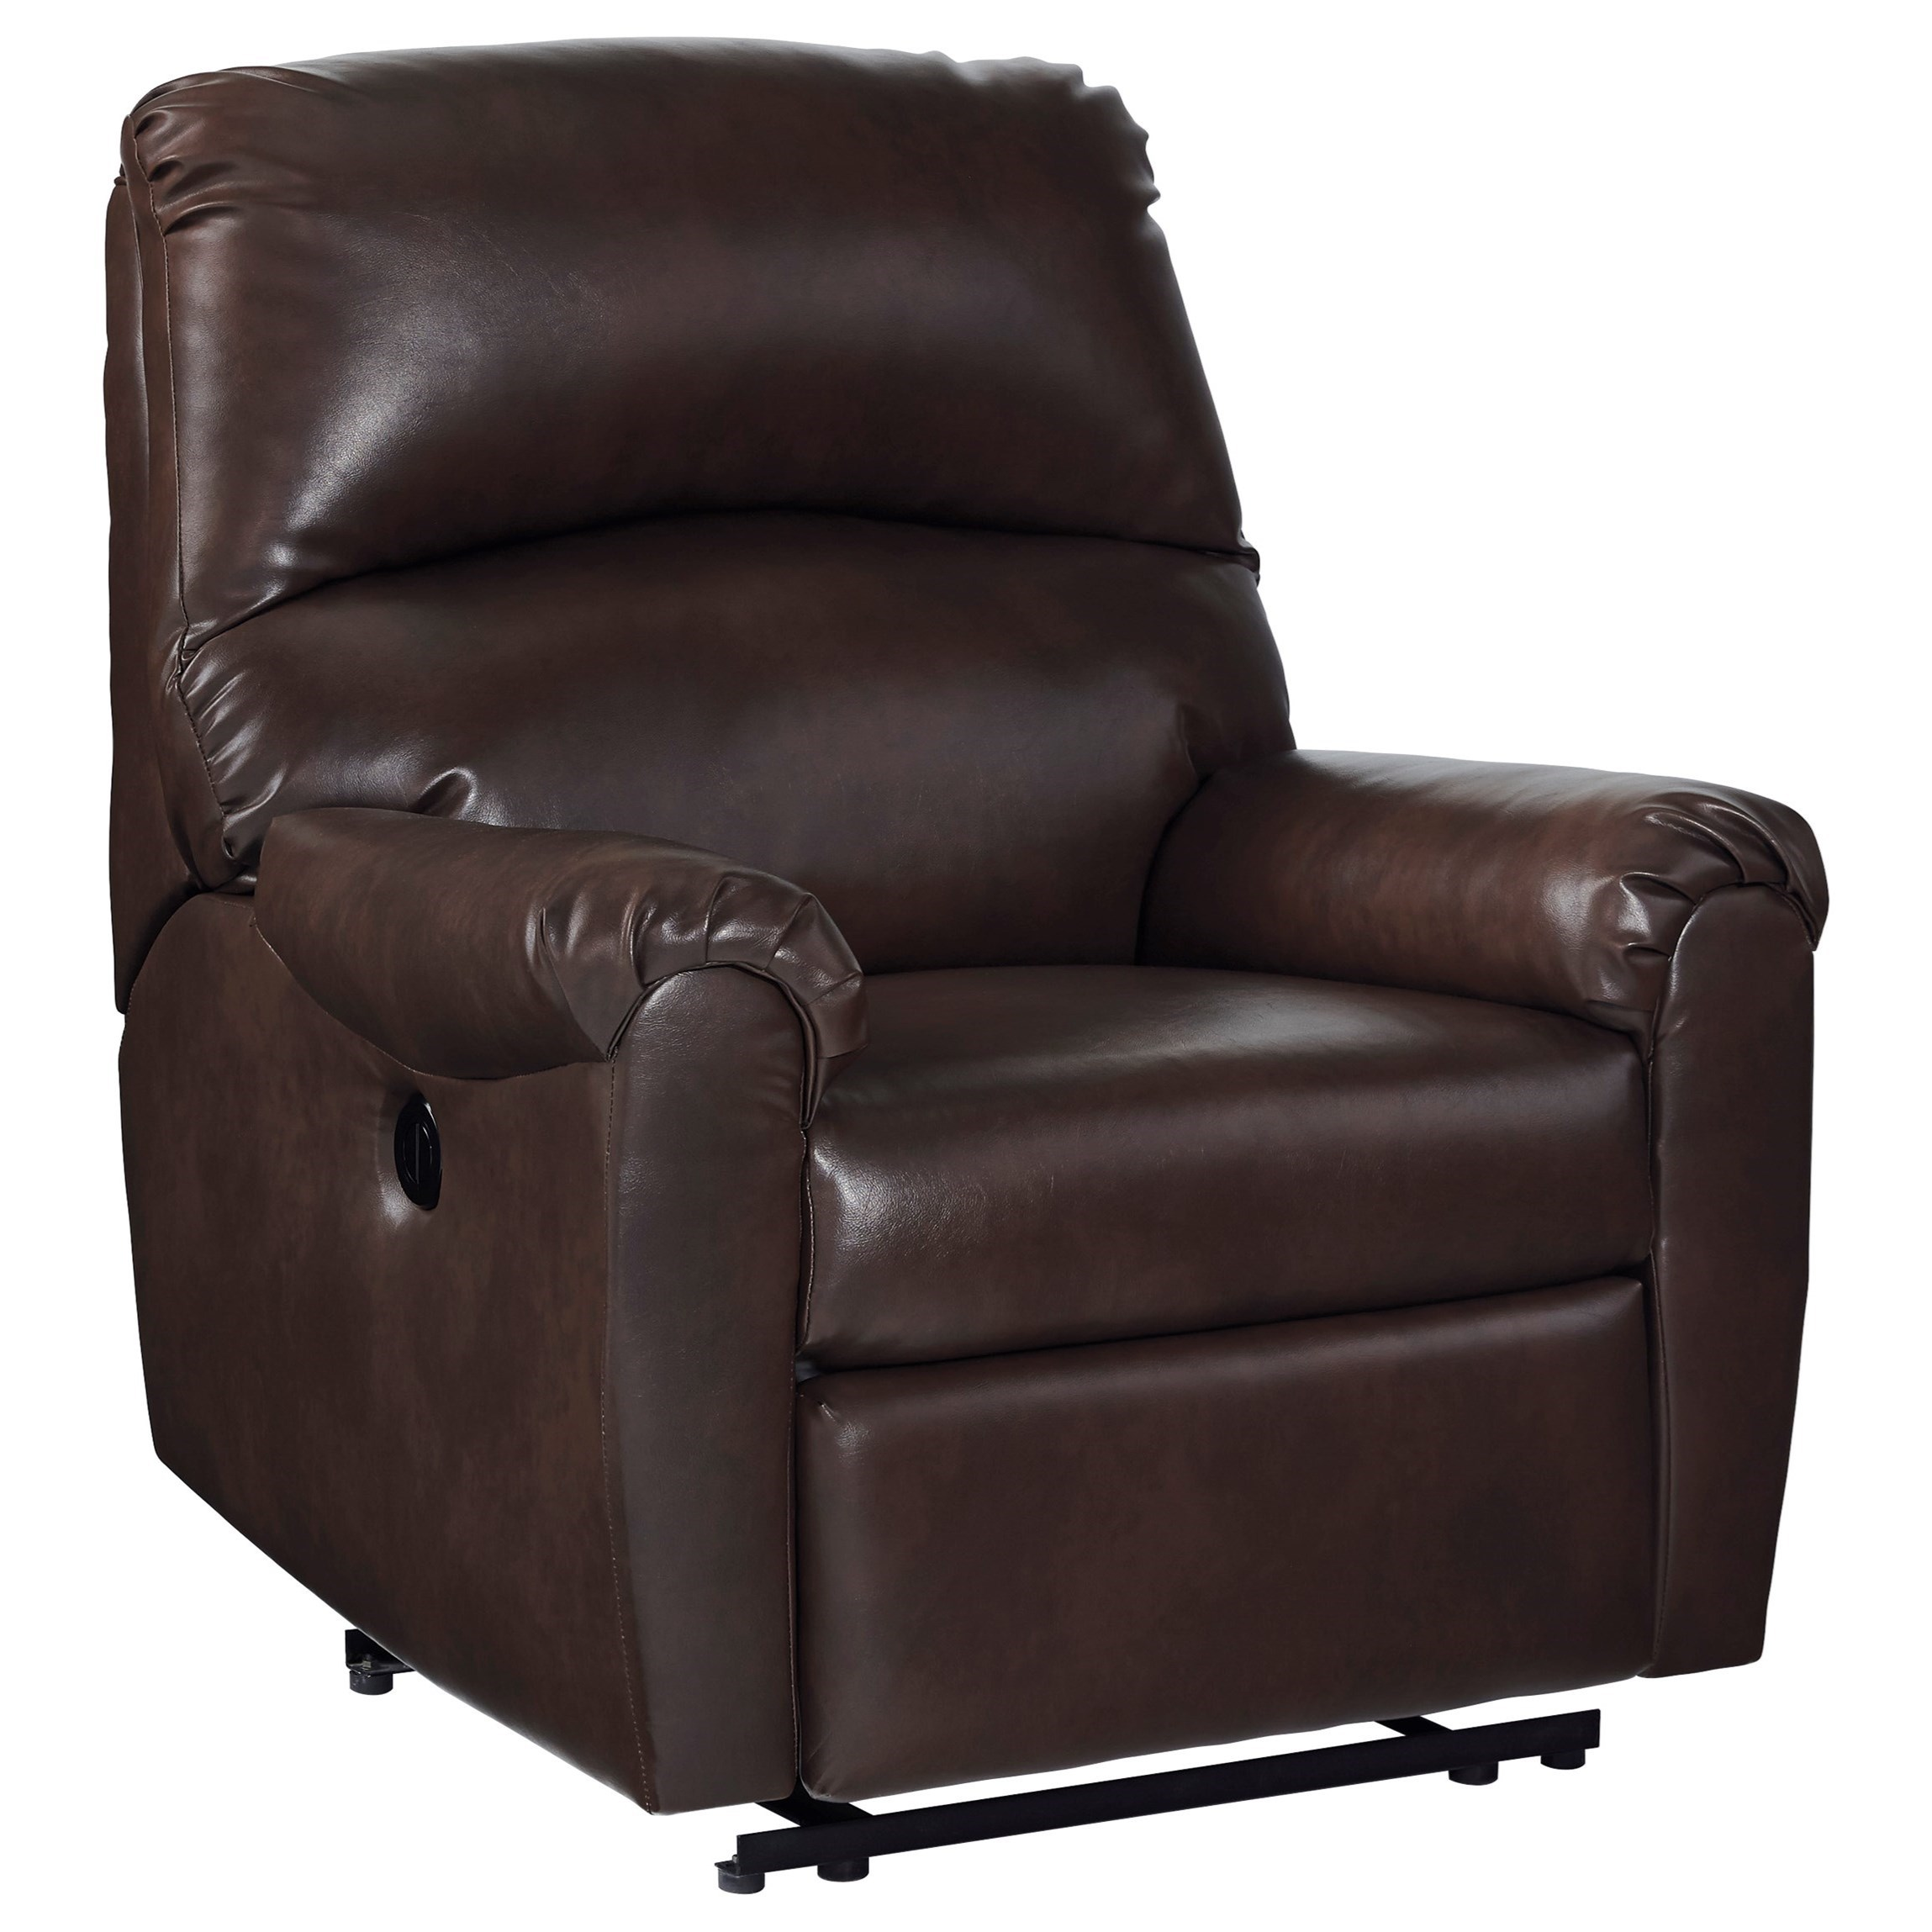 Signature Design by Ashley Crozier Power Recliner - Item Number: 7630406